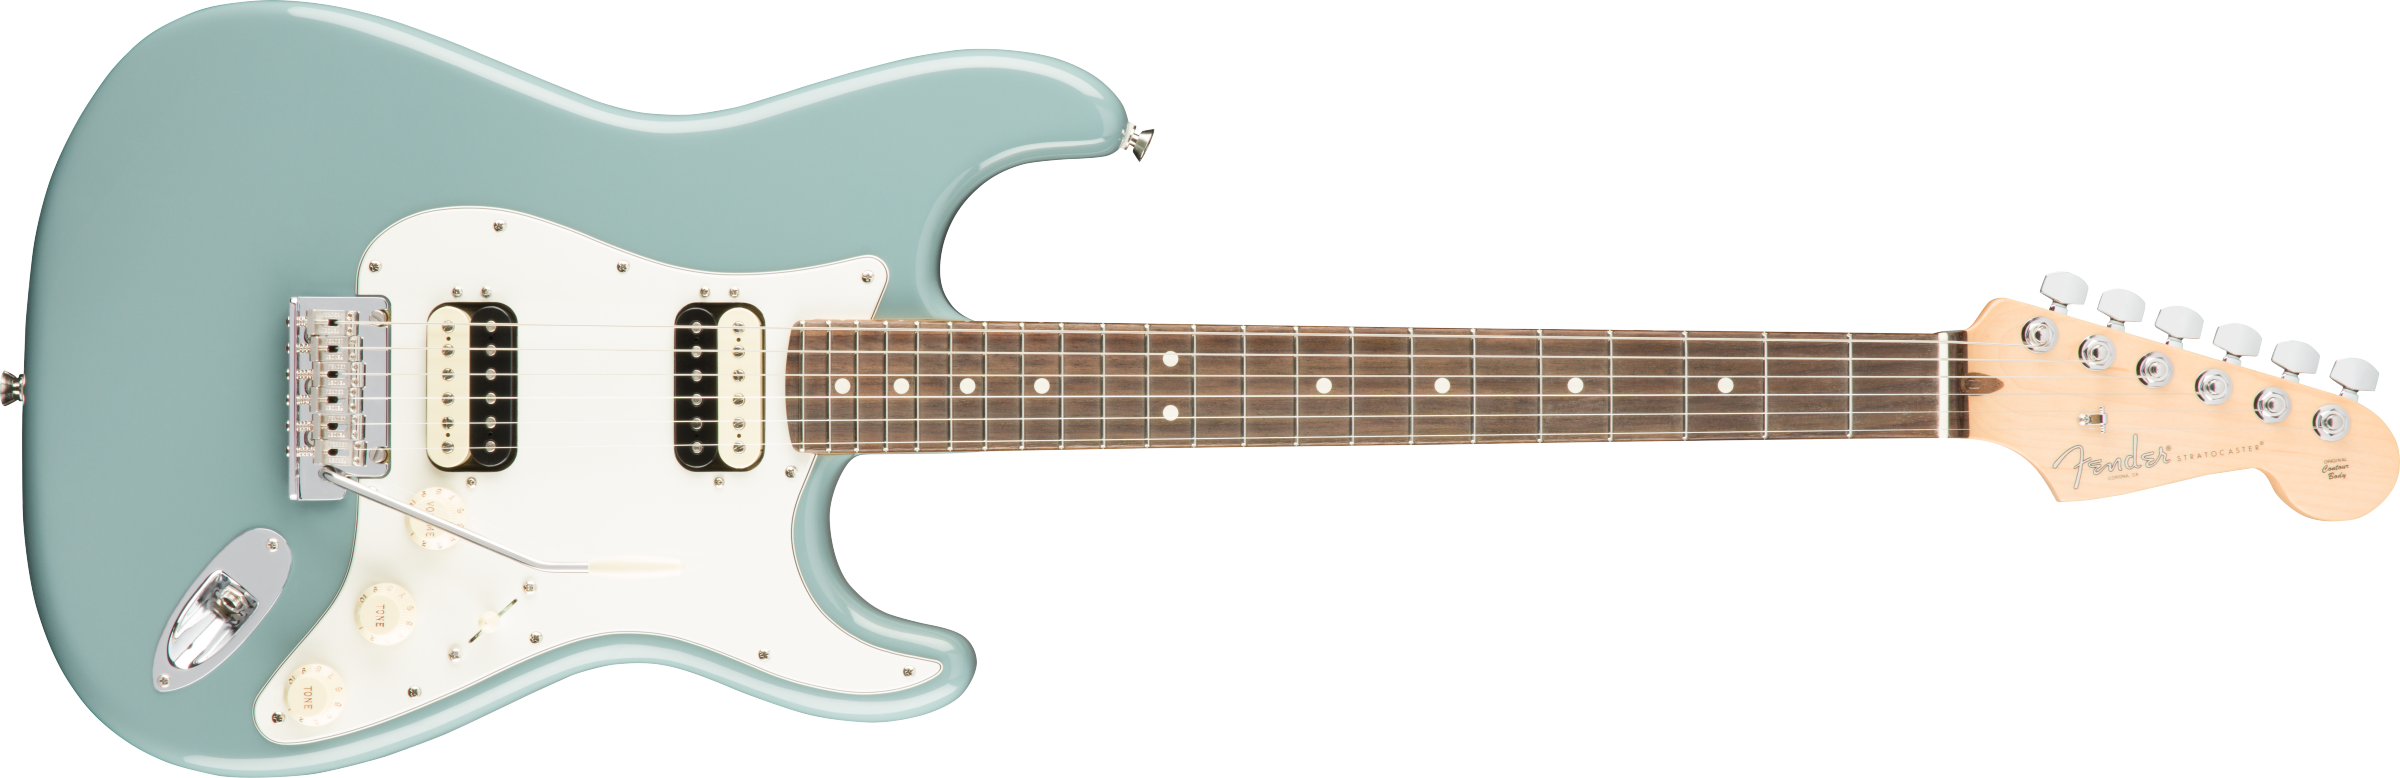 FENDER-AMERICAN-PROFESSIONAL-AM-PRO-STRATOCASTER-HH-SHAW-RW-SNG-0113050748-sku-550008722